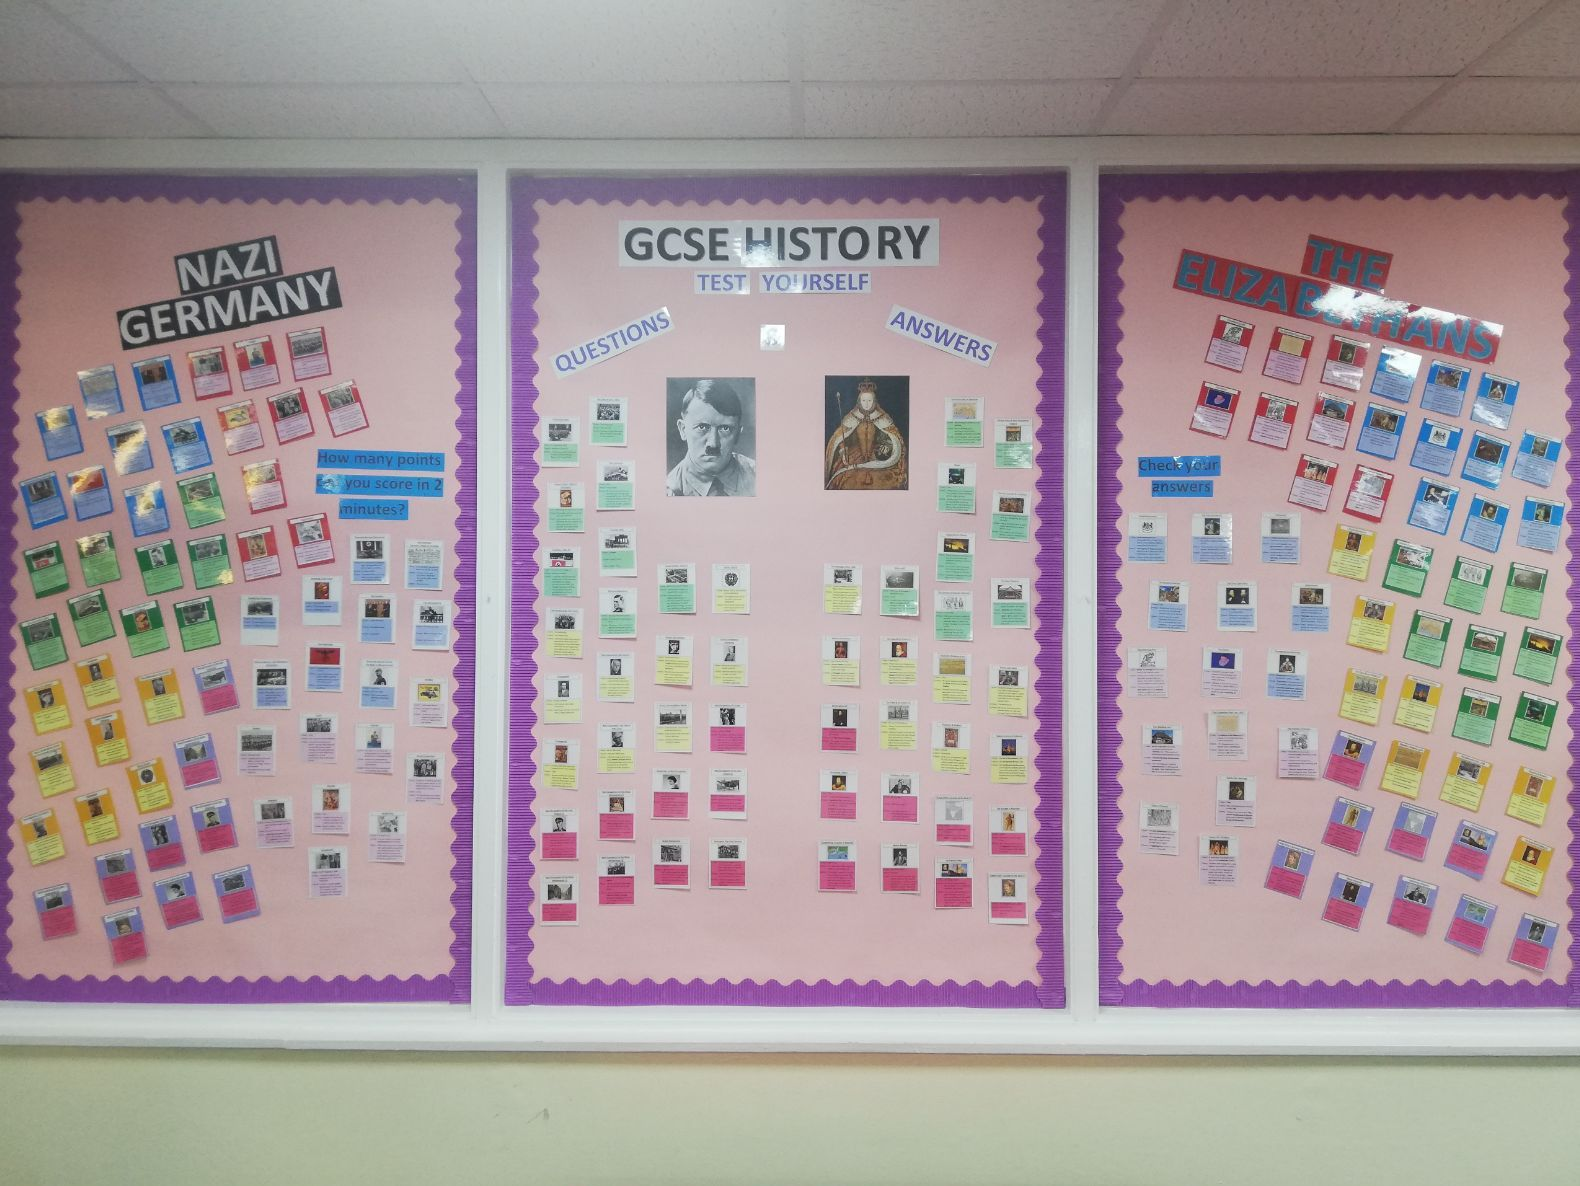 OCR History B: Elizabethans & Nazi Germany - Revision Cards and Classroom Display Bundle